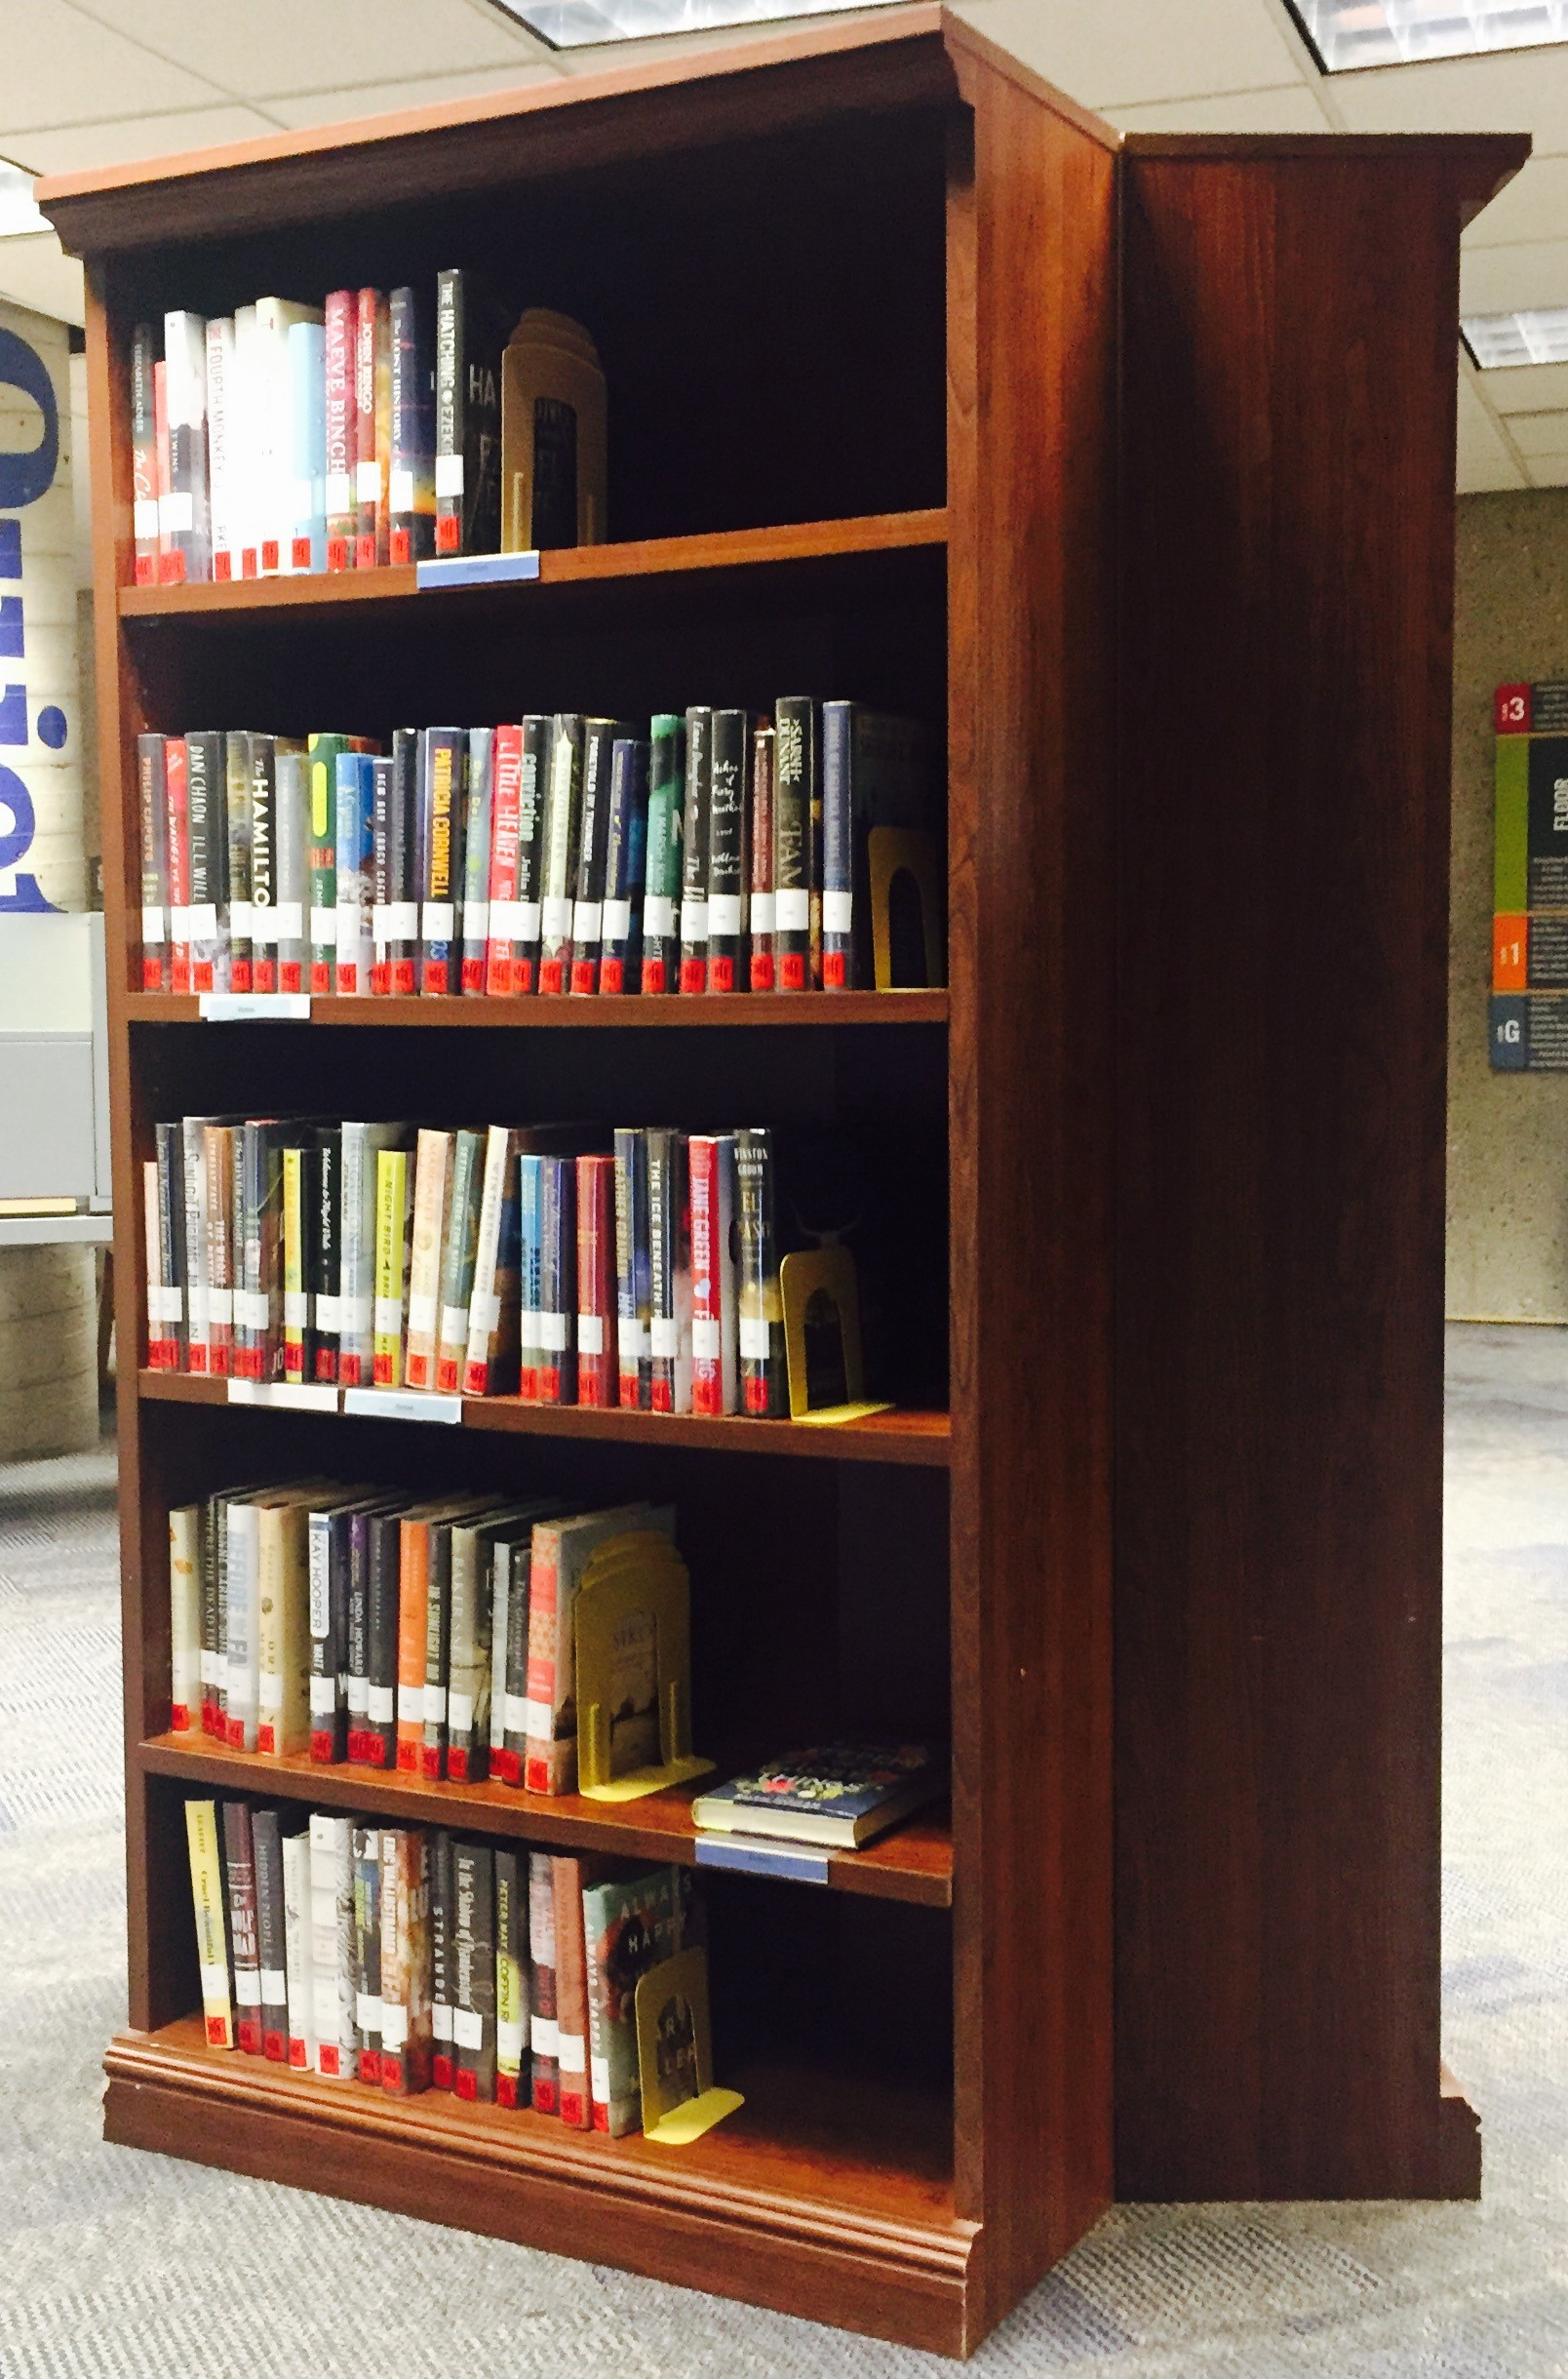 The Popular Reading shelf is on the second floor, at the top of the main stairwell.